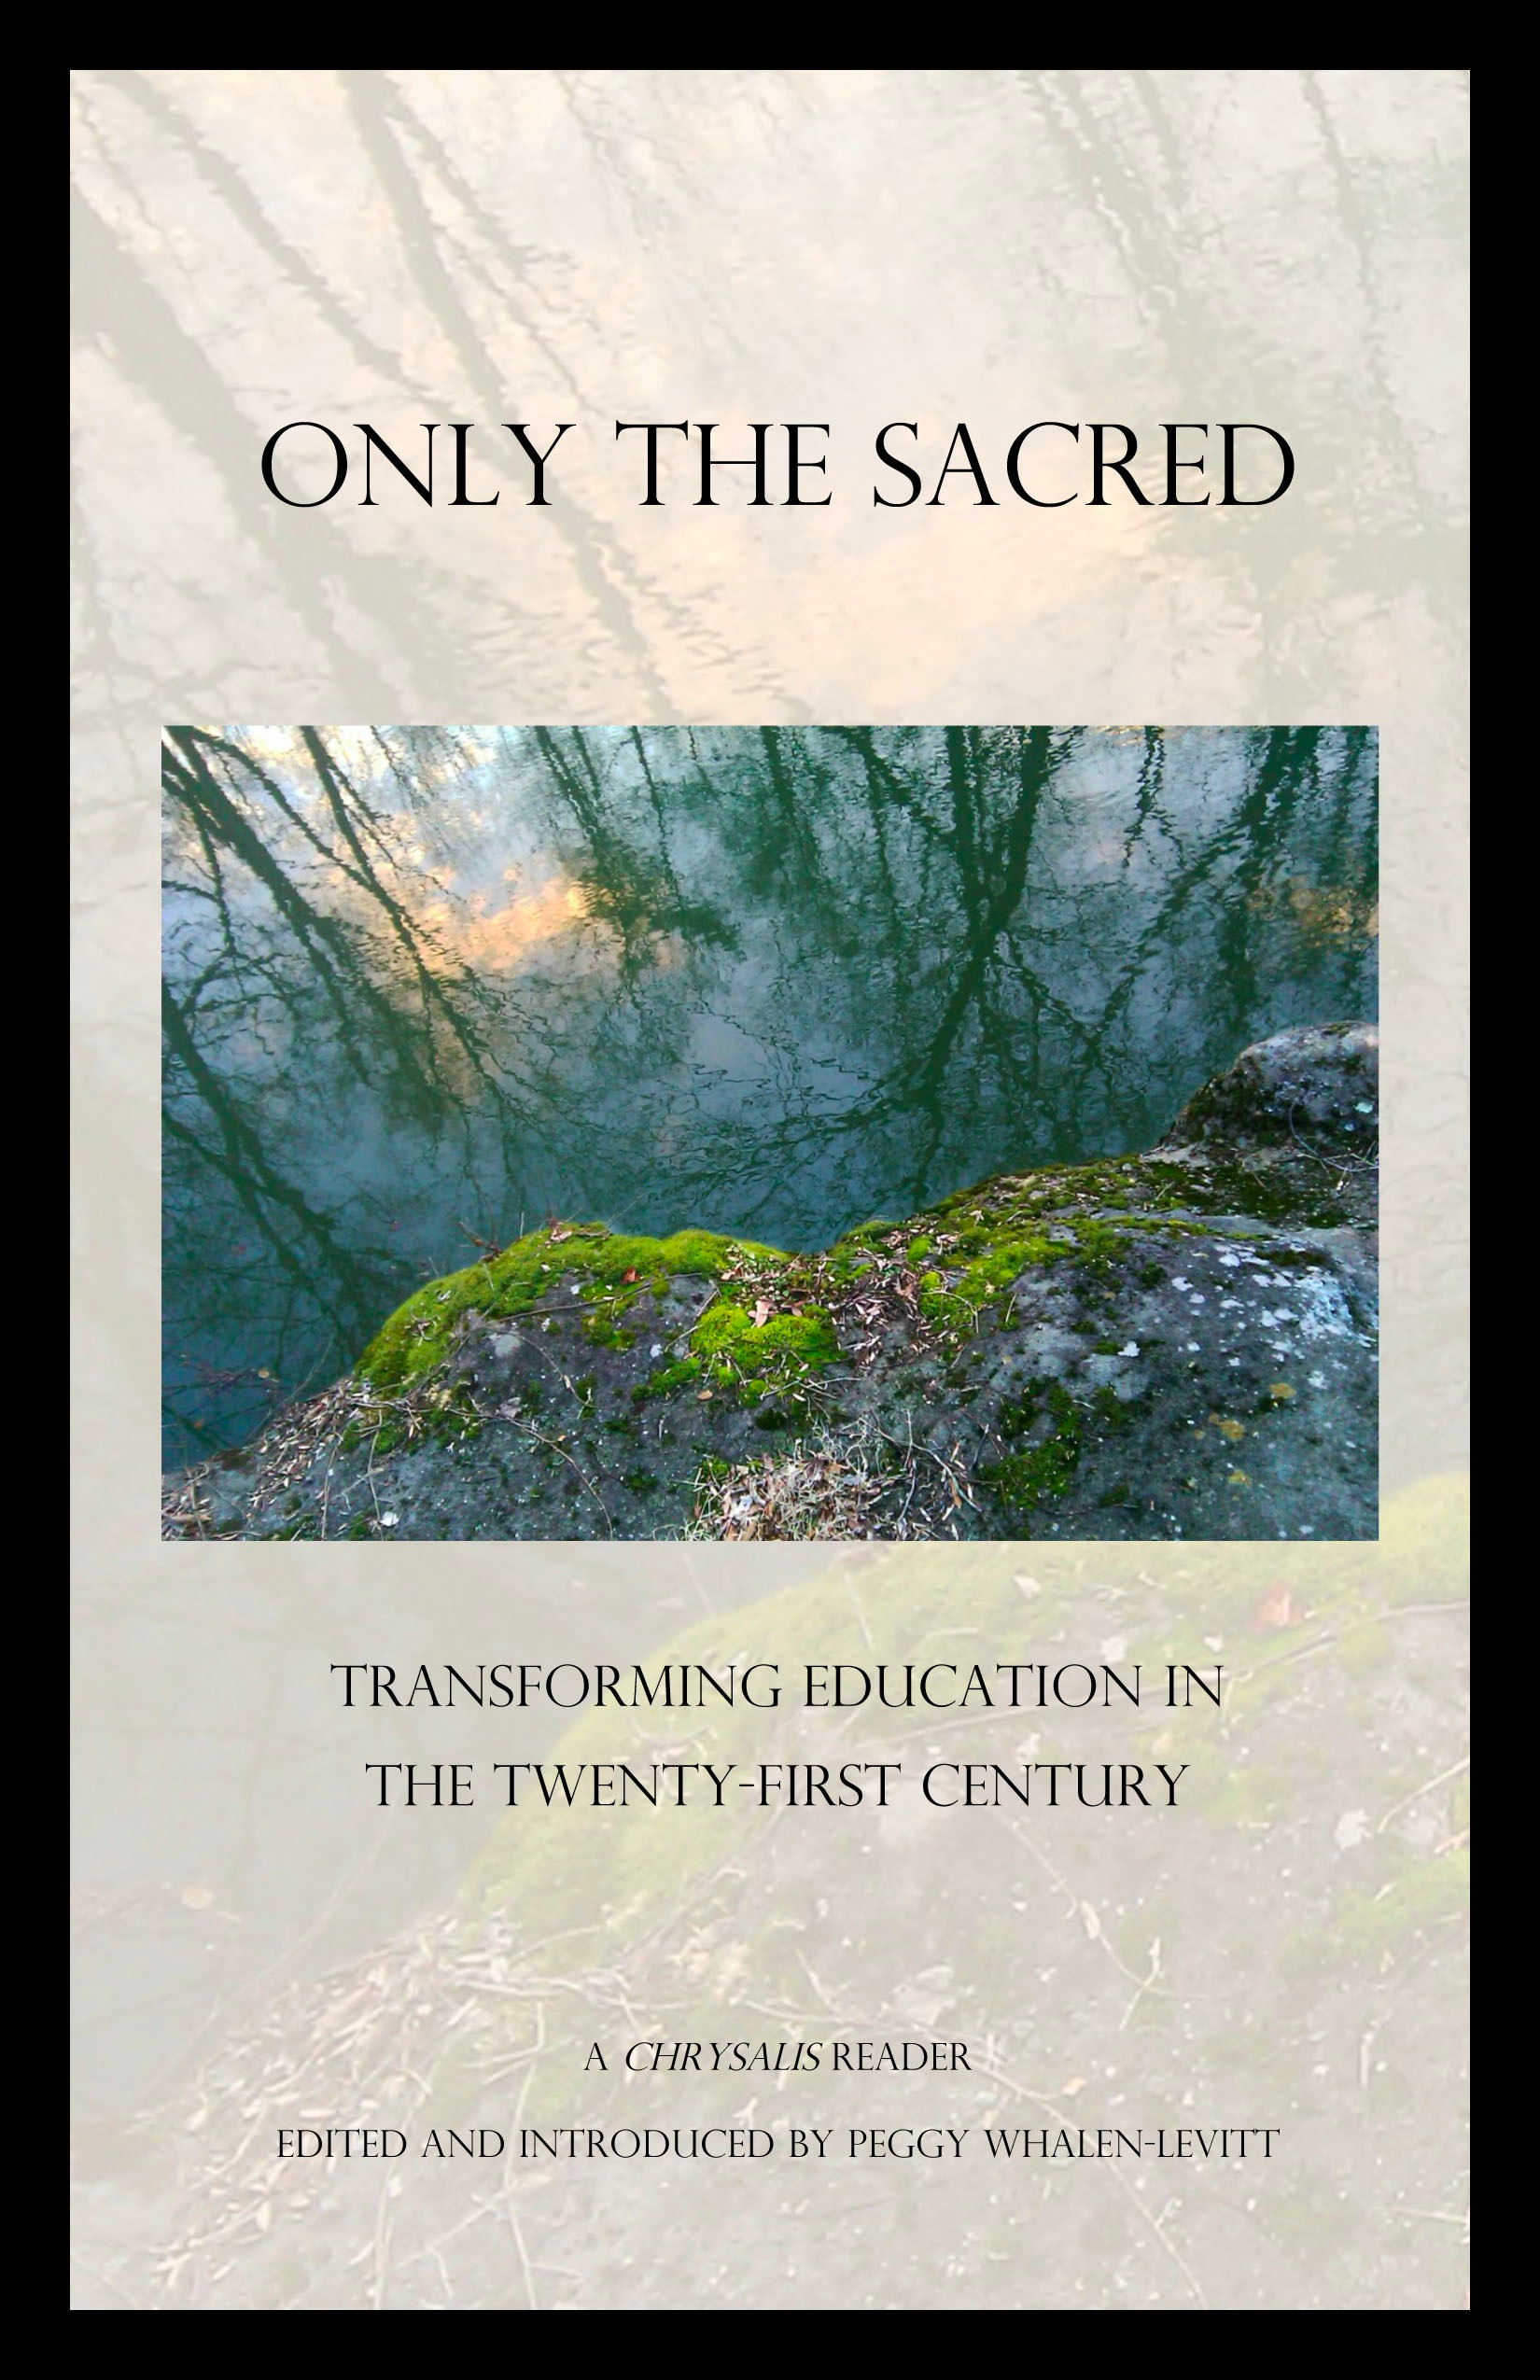 3c1.+Only+the+Sacred+Front+Cover.jpg